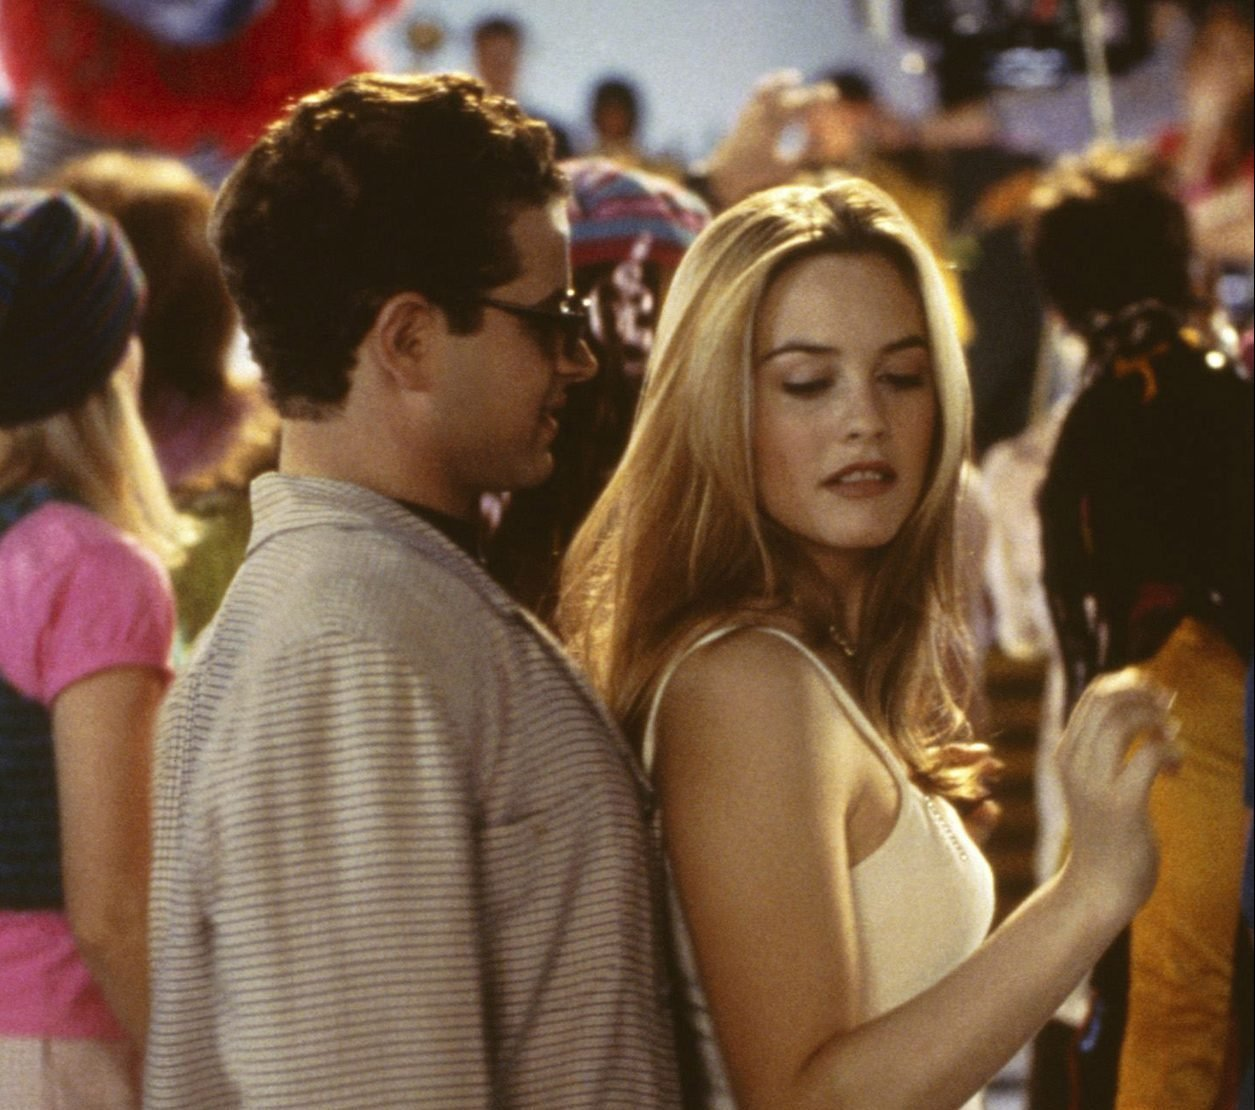 clueless 23 e1617113146616 20 Things You Probably Didn't Know About Clueless